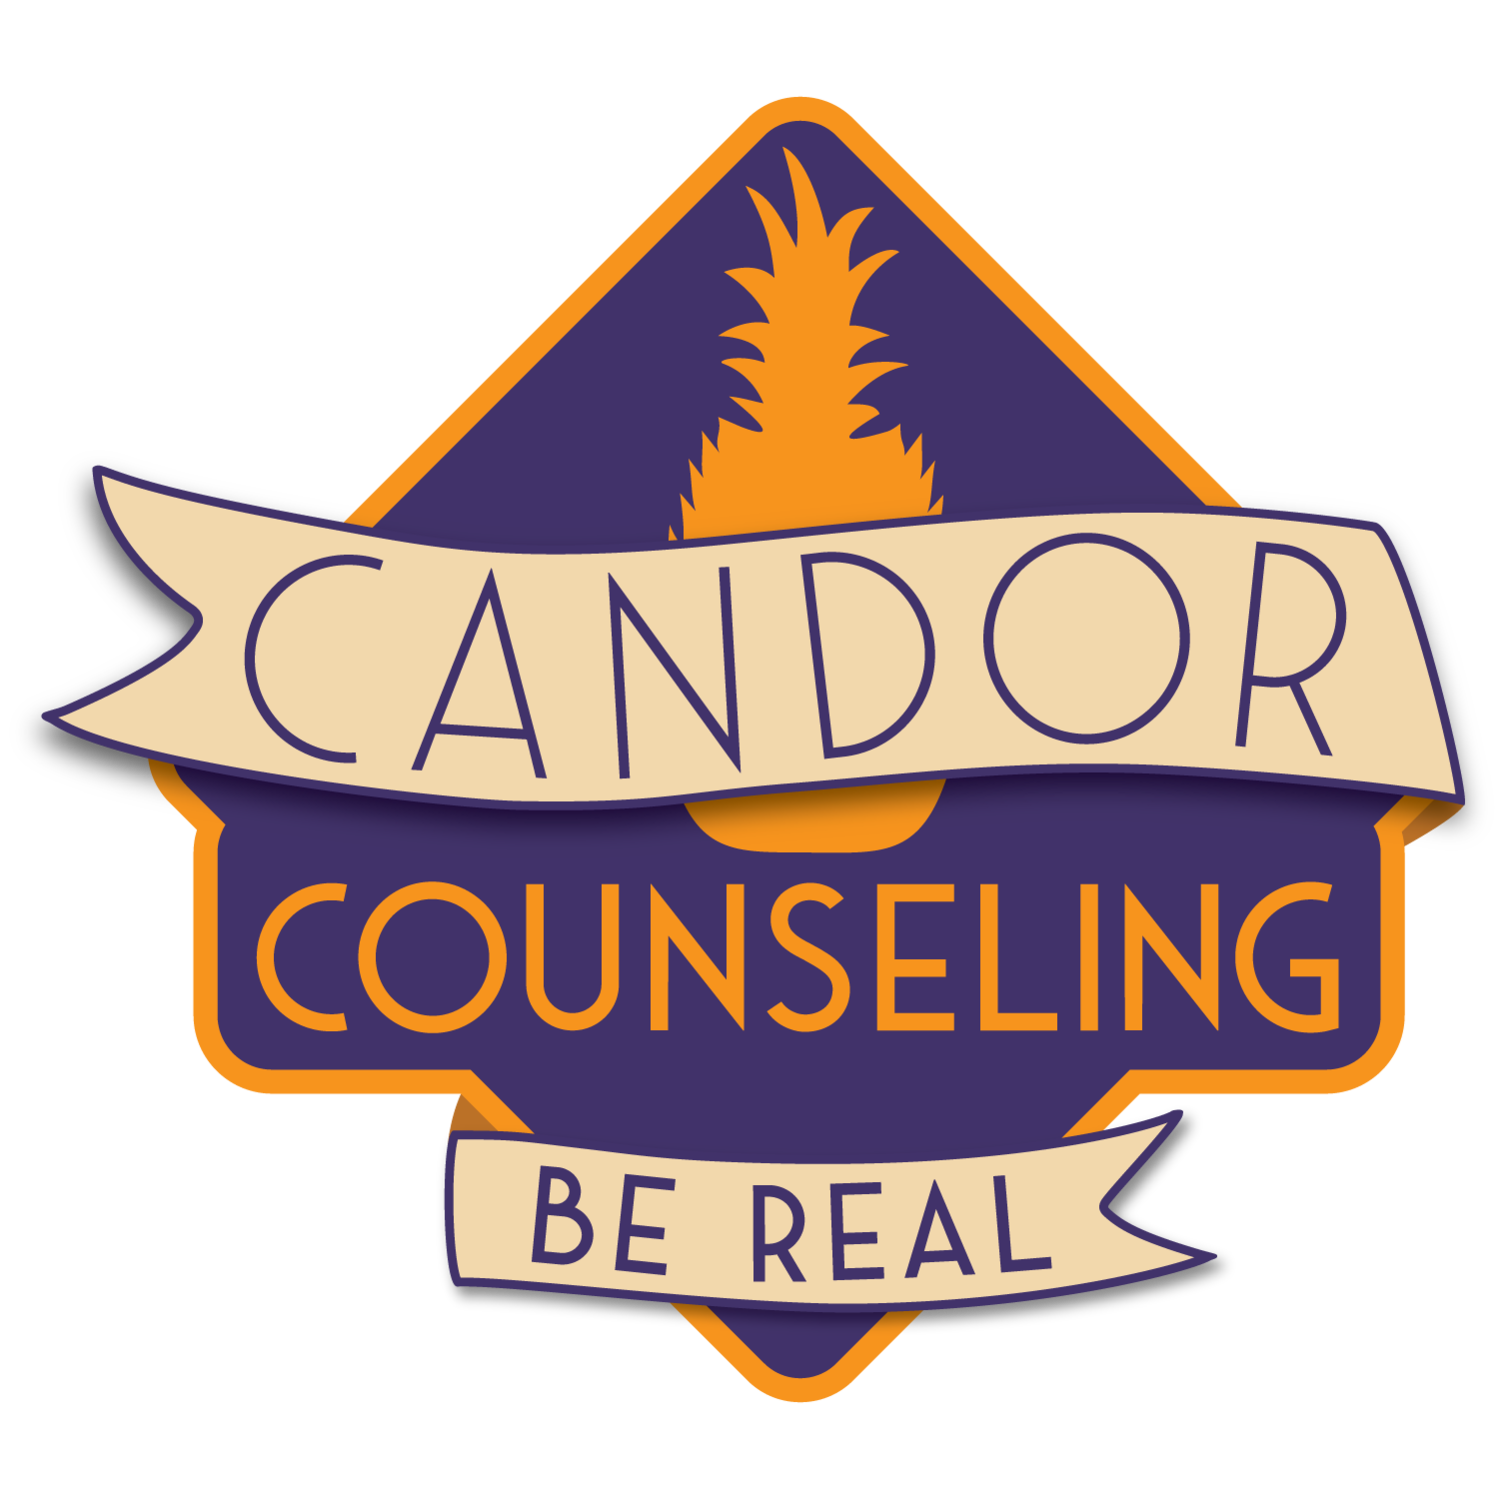 Candor Counseling Services